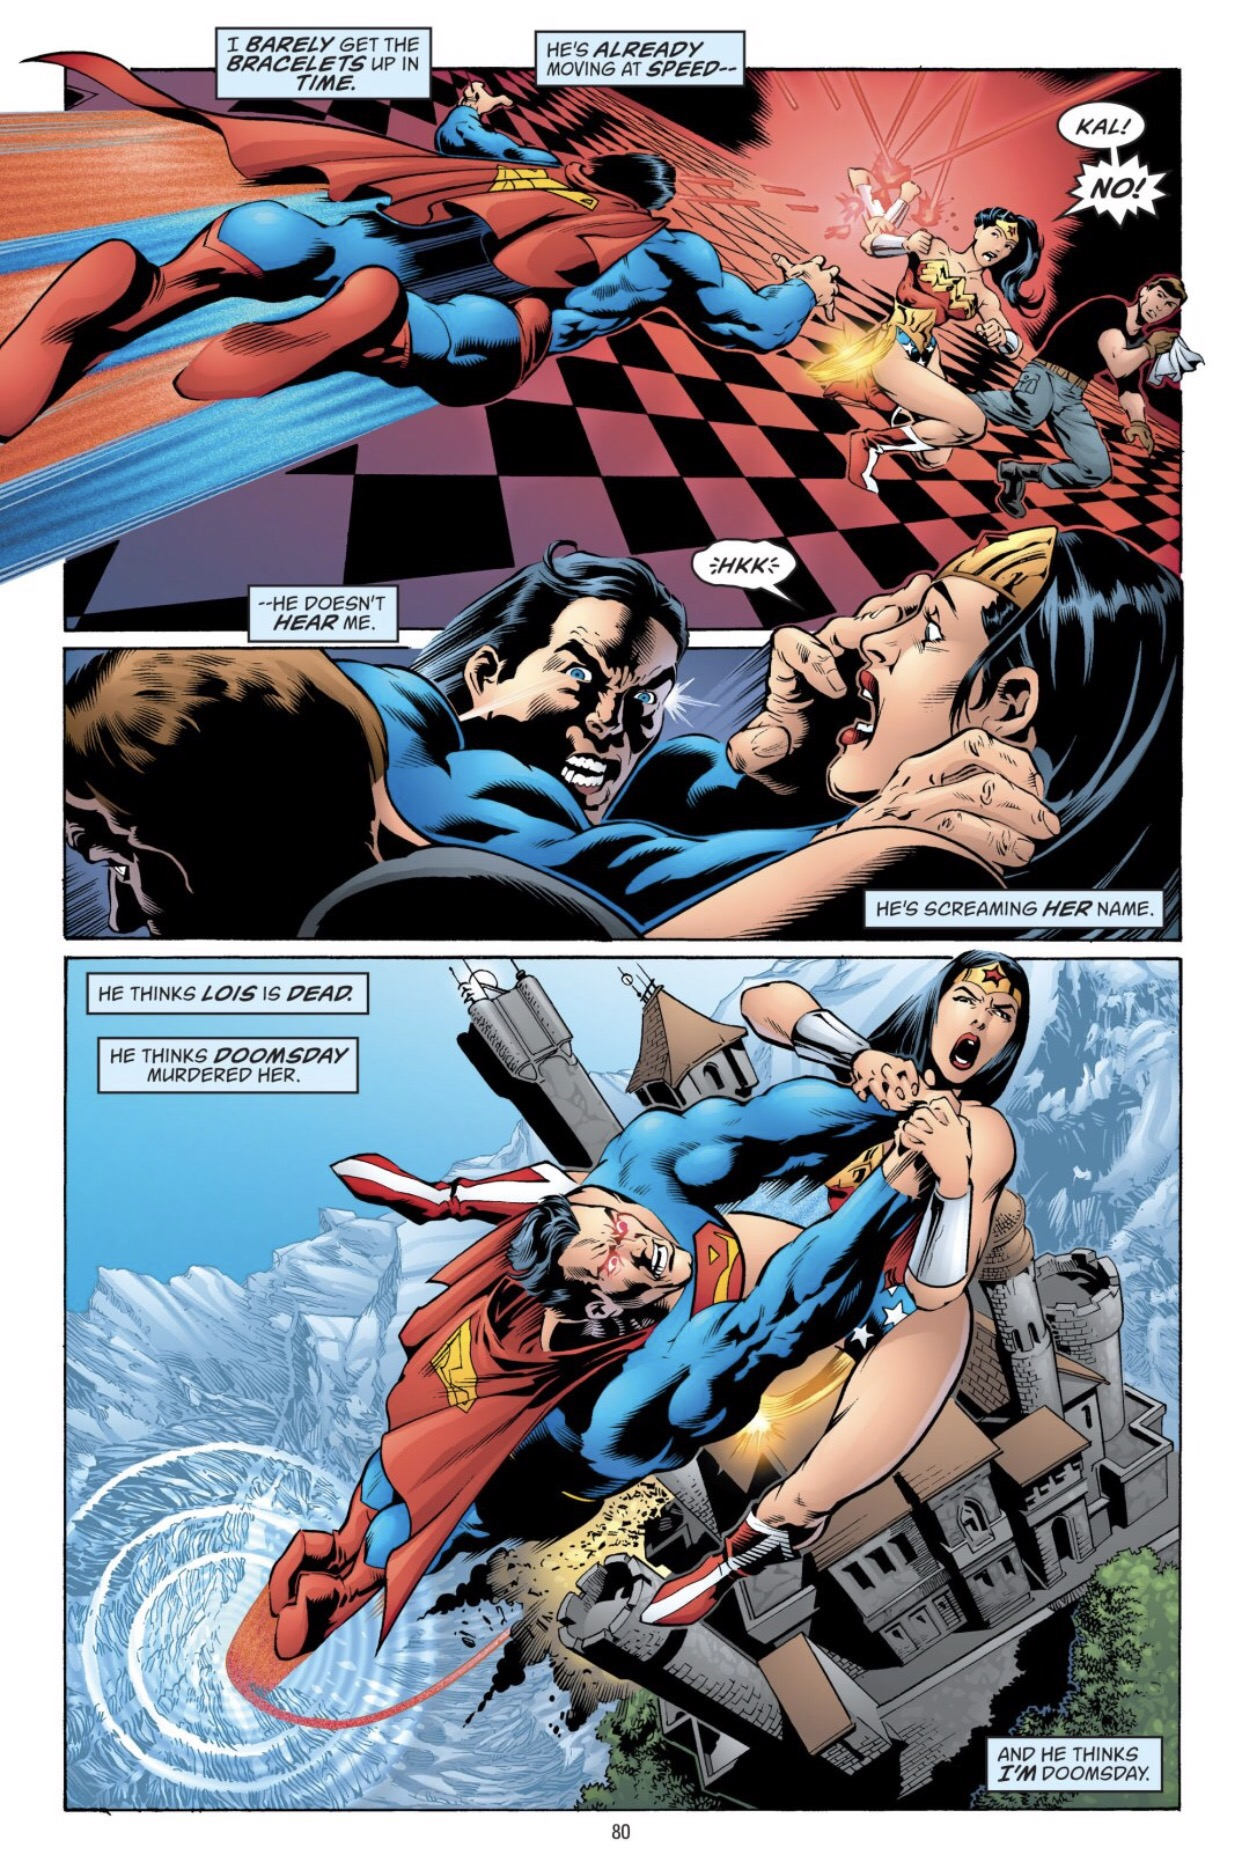 Superman versus wonder woman-9769